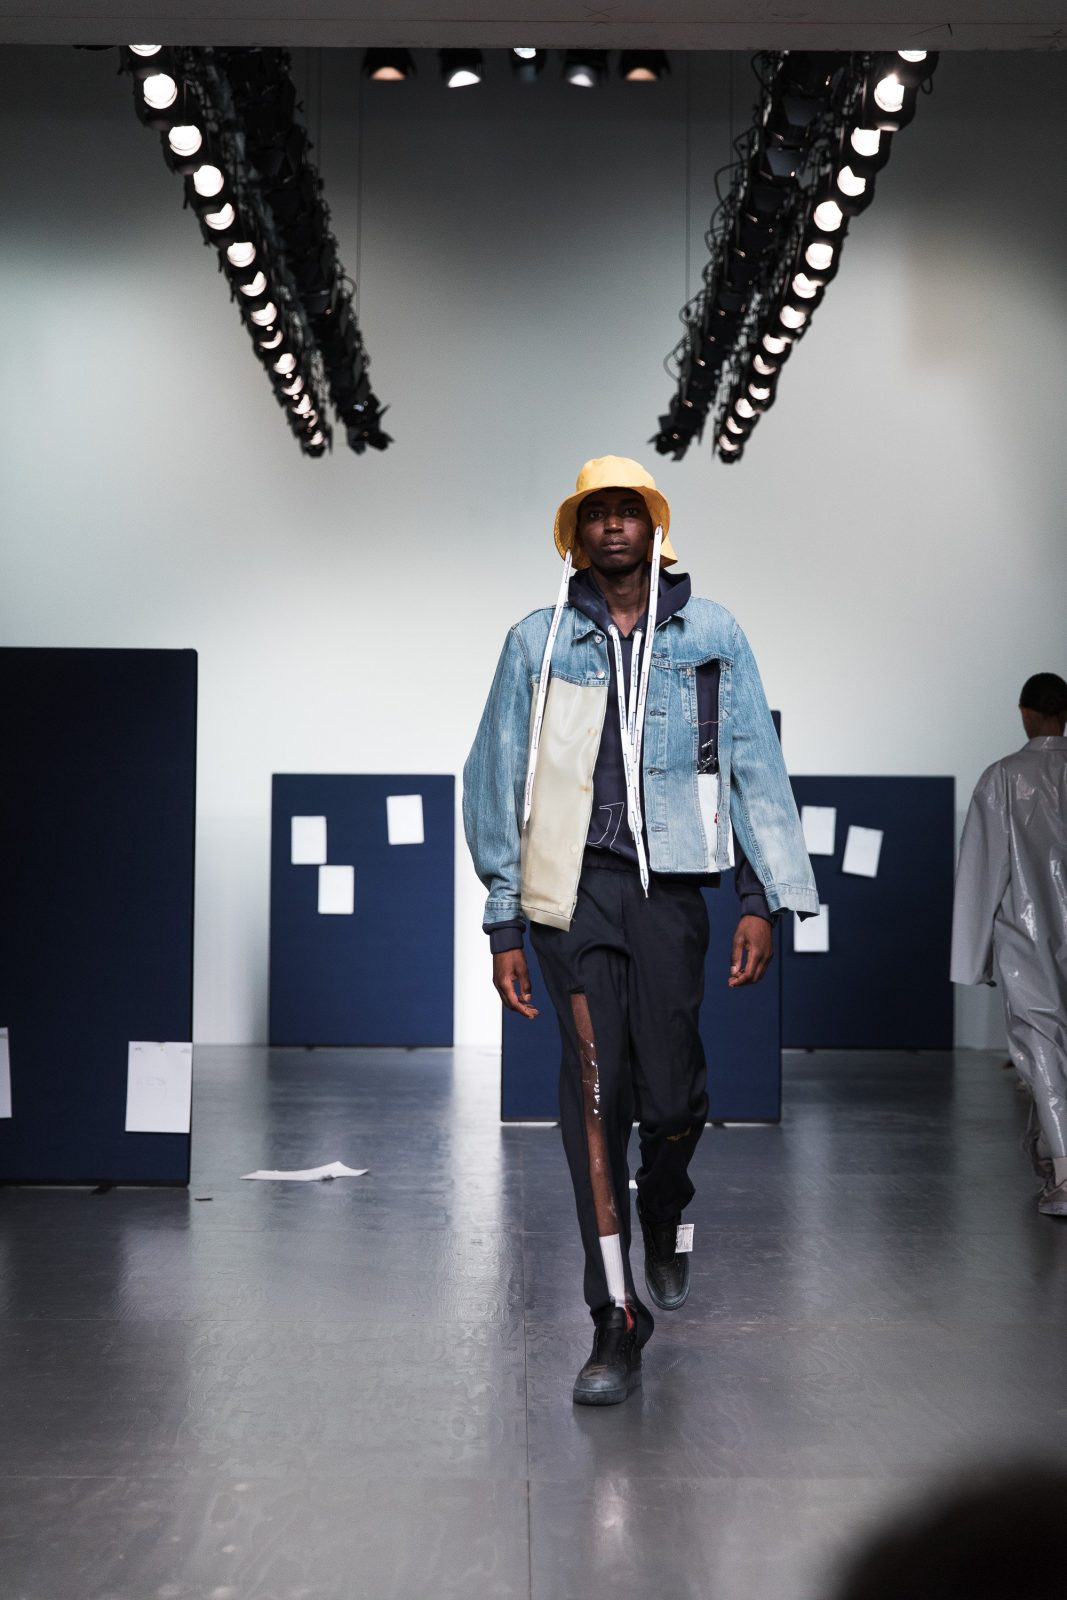 A-Cold-Wall* share SS18 line at LFWM